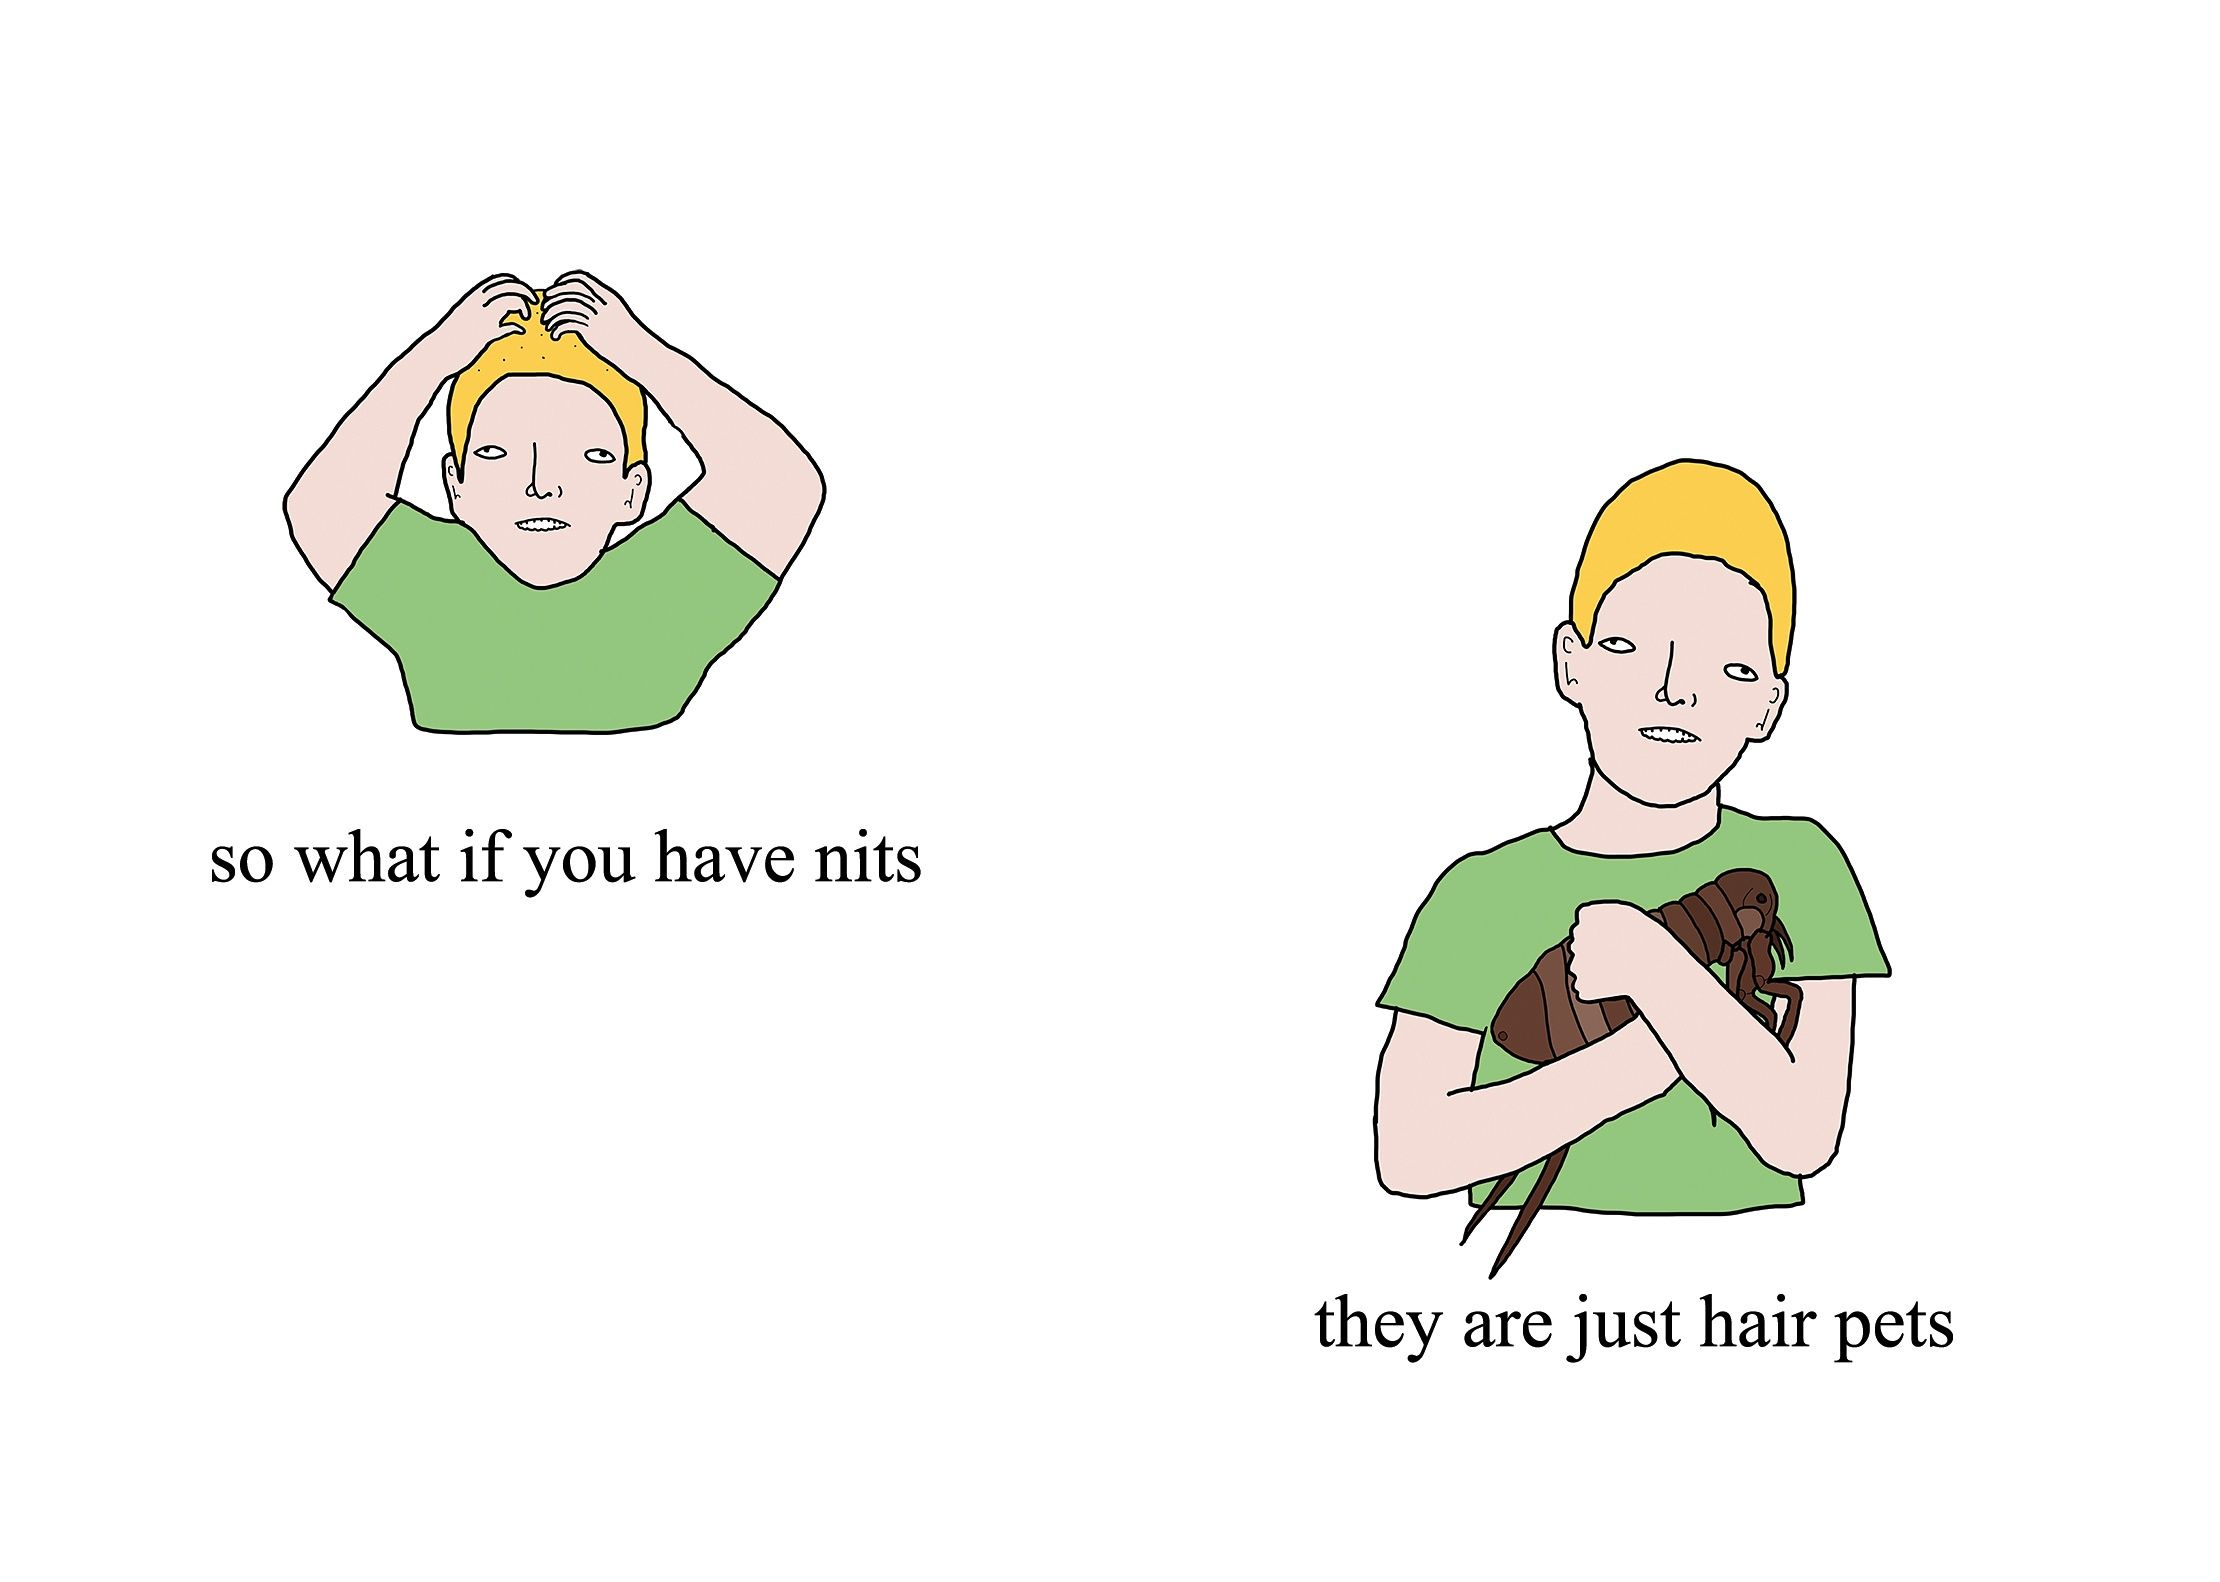 Nits are just hair pets how to think positive by chris simpsons